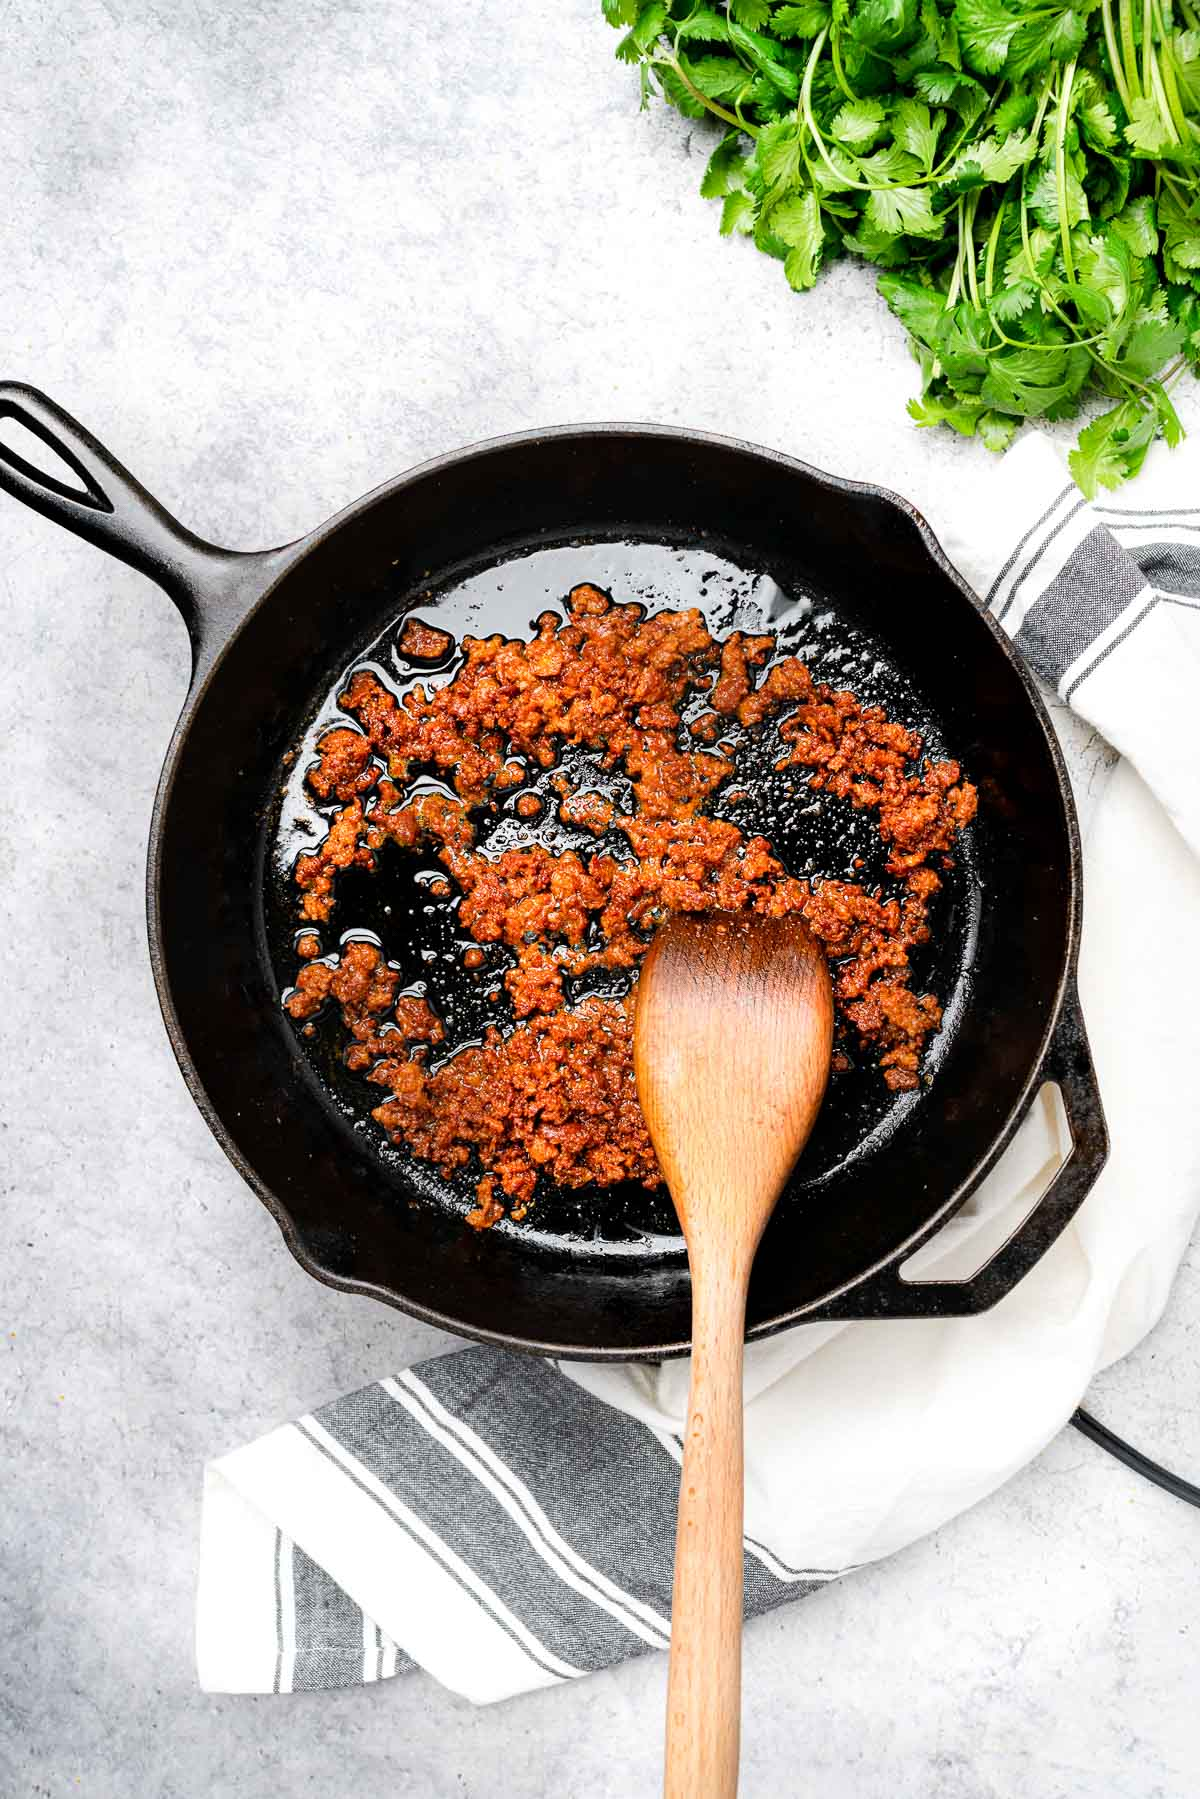 crumbled chorizo in a cast iron skillet